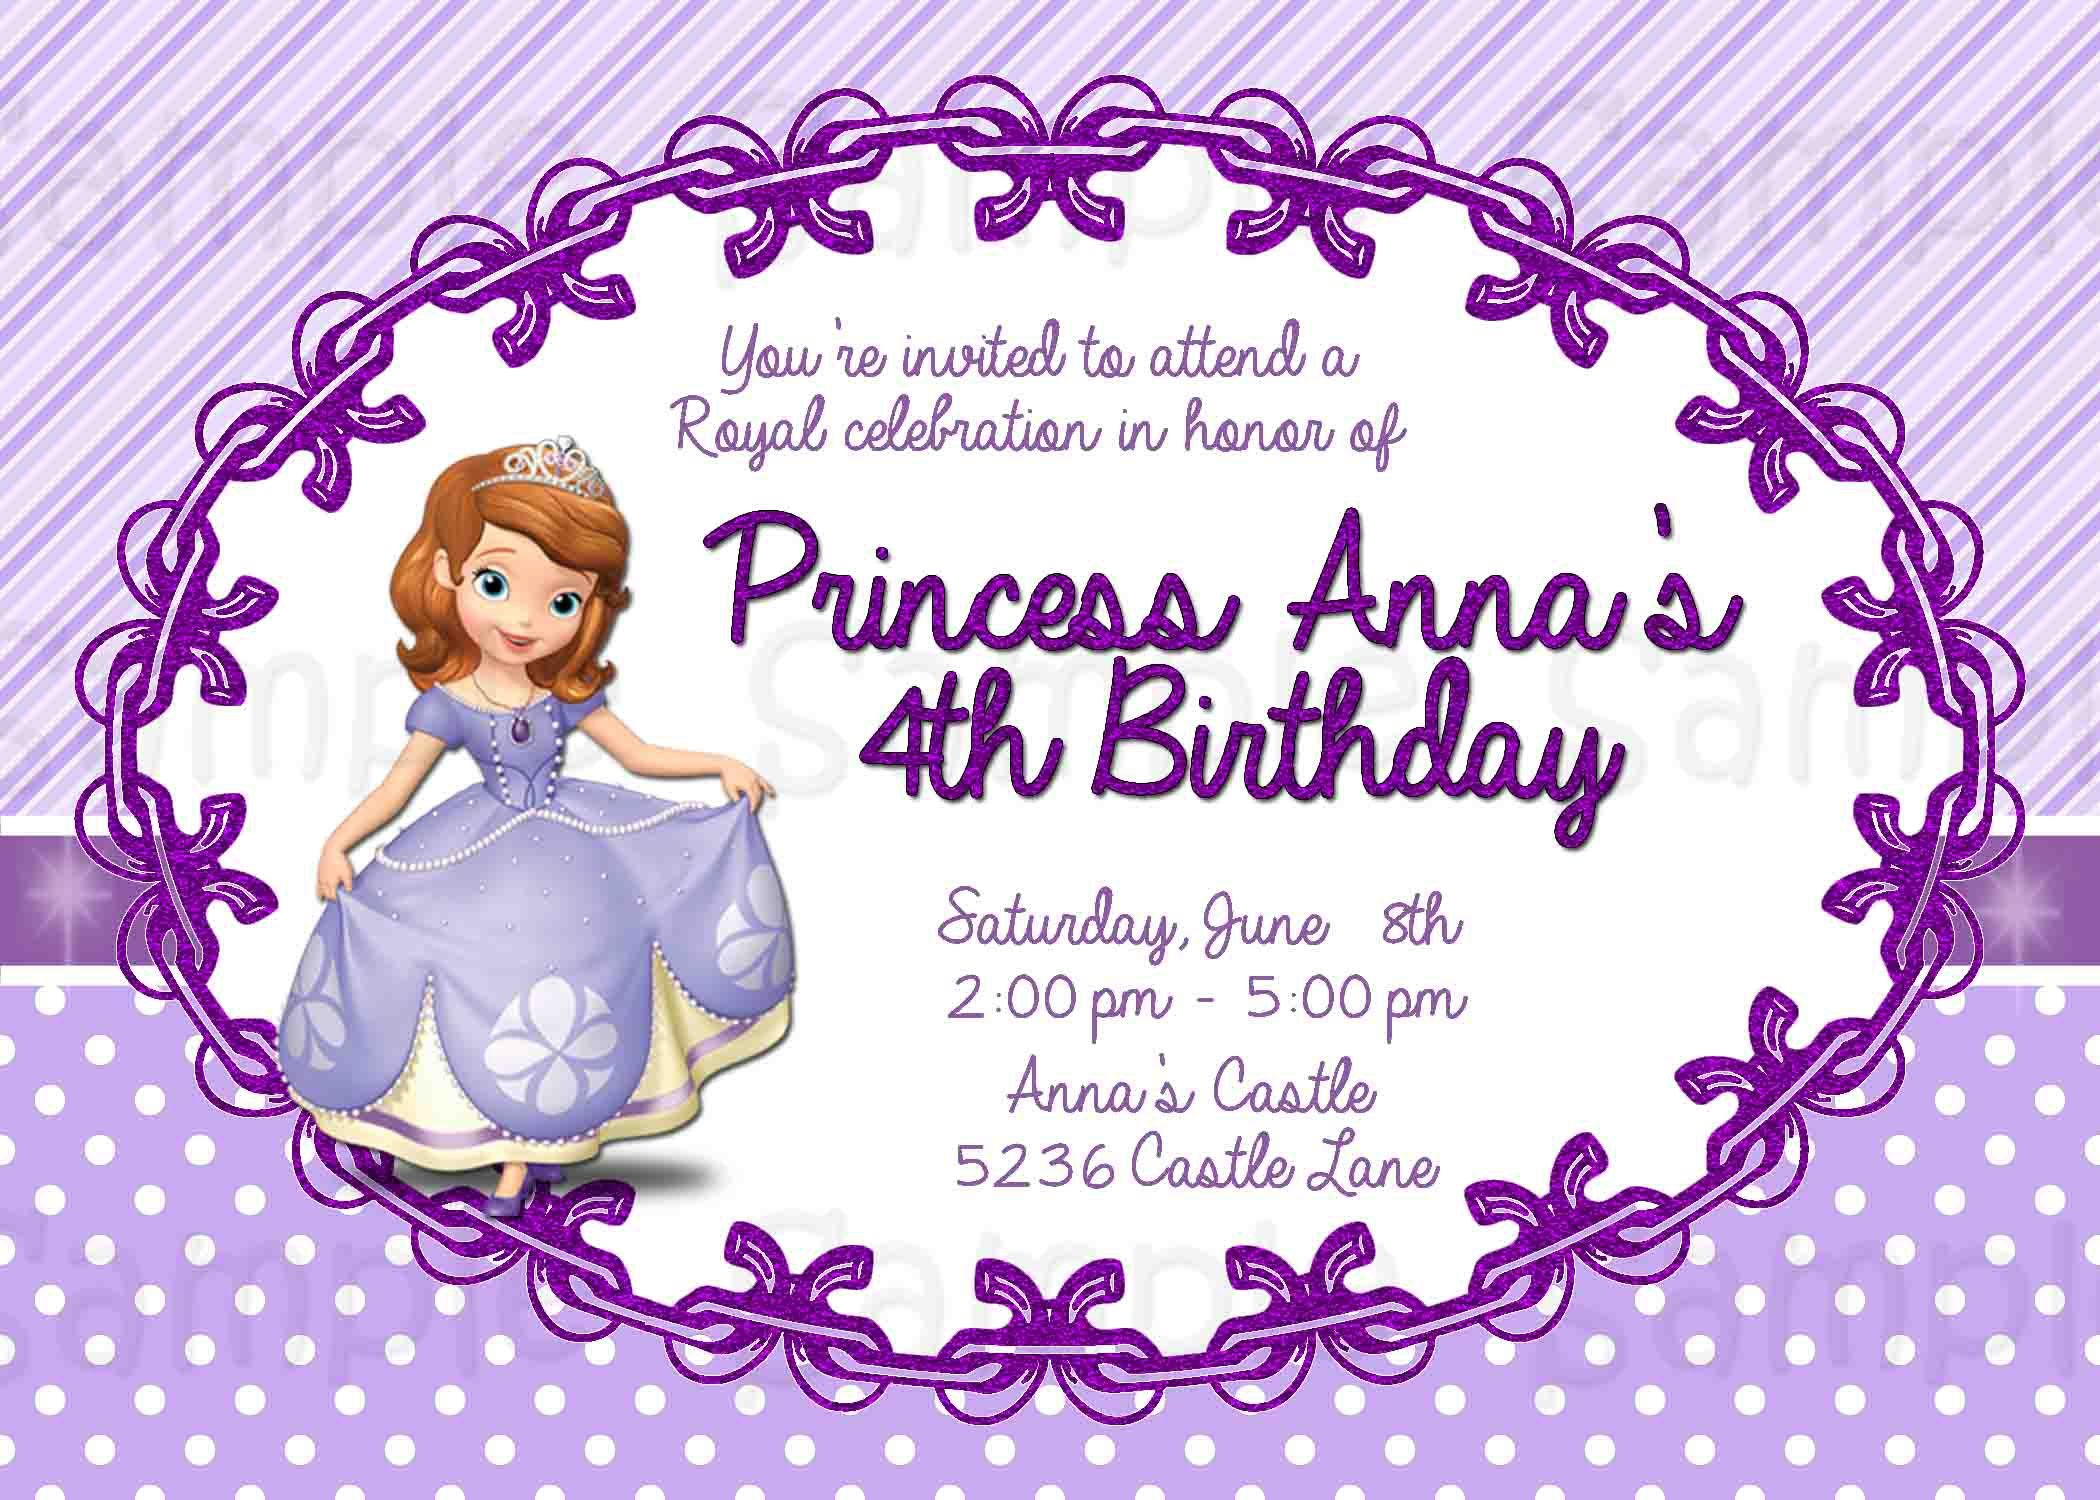 Best 25 Online birthday invitations ideas – Where Can I Print Birthday Invitations